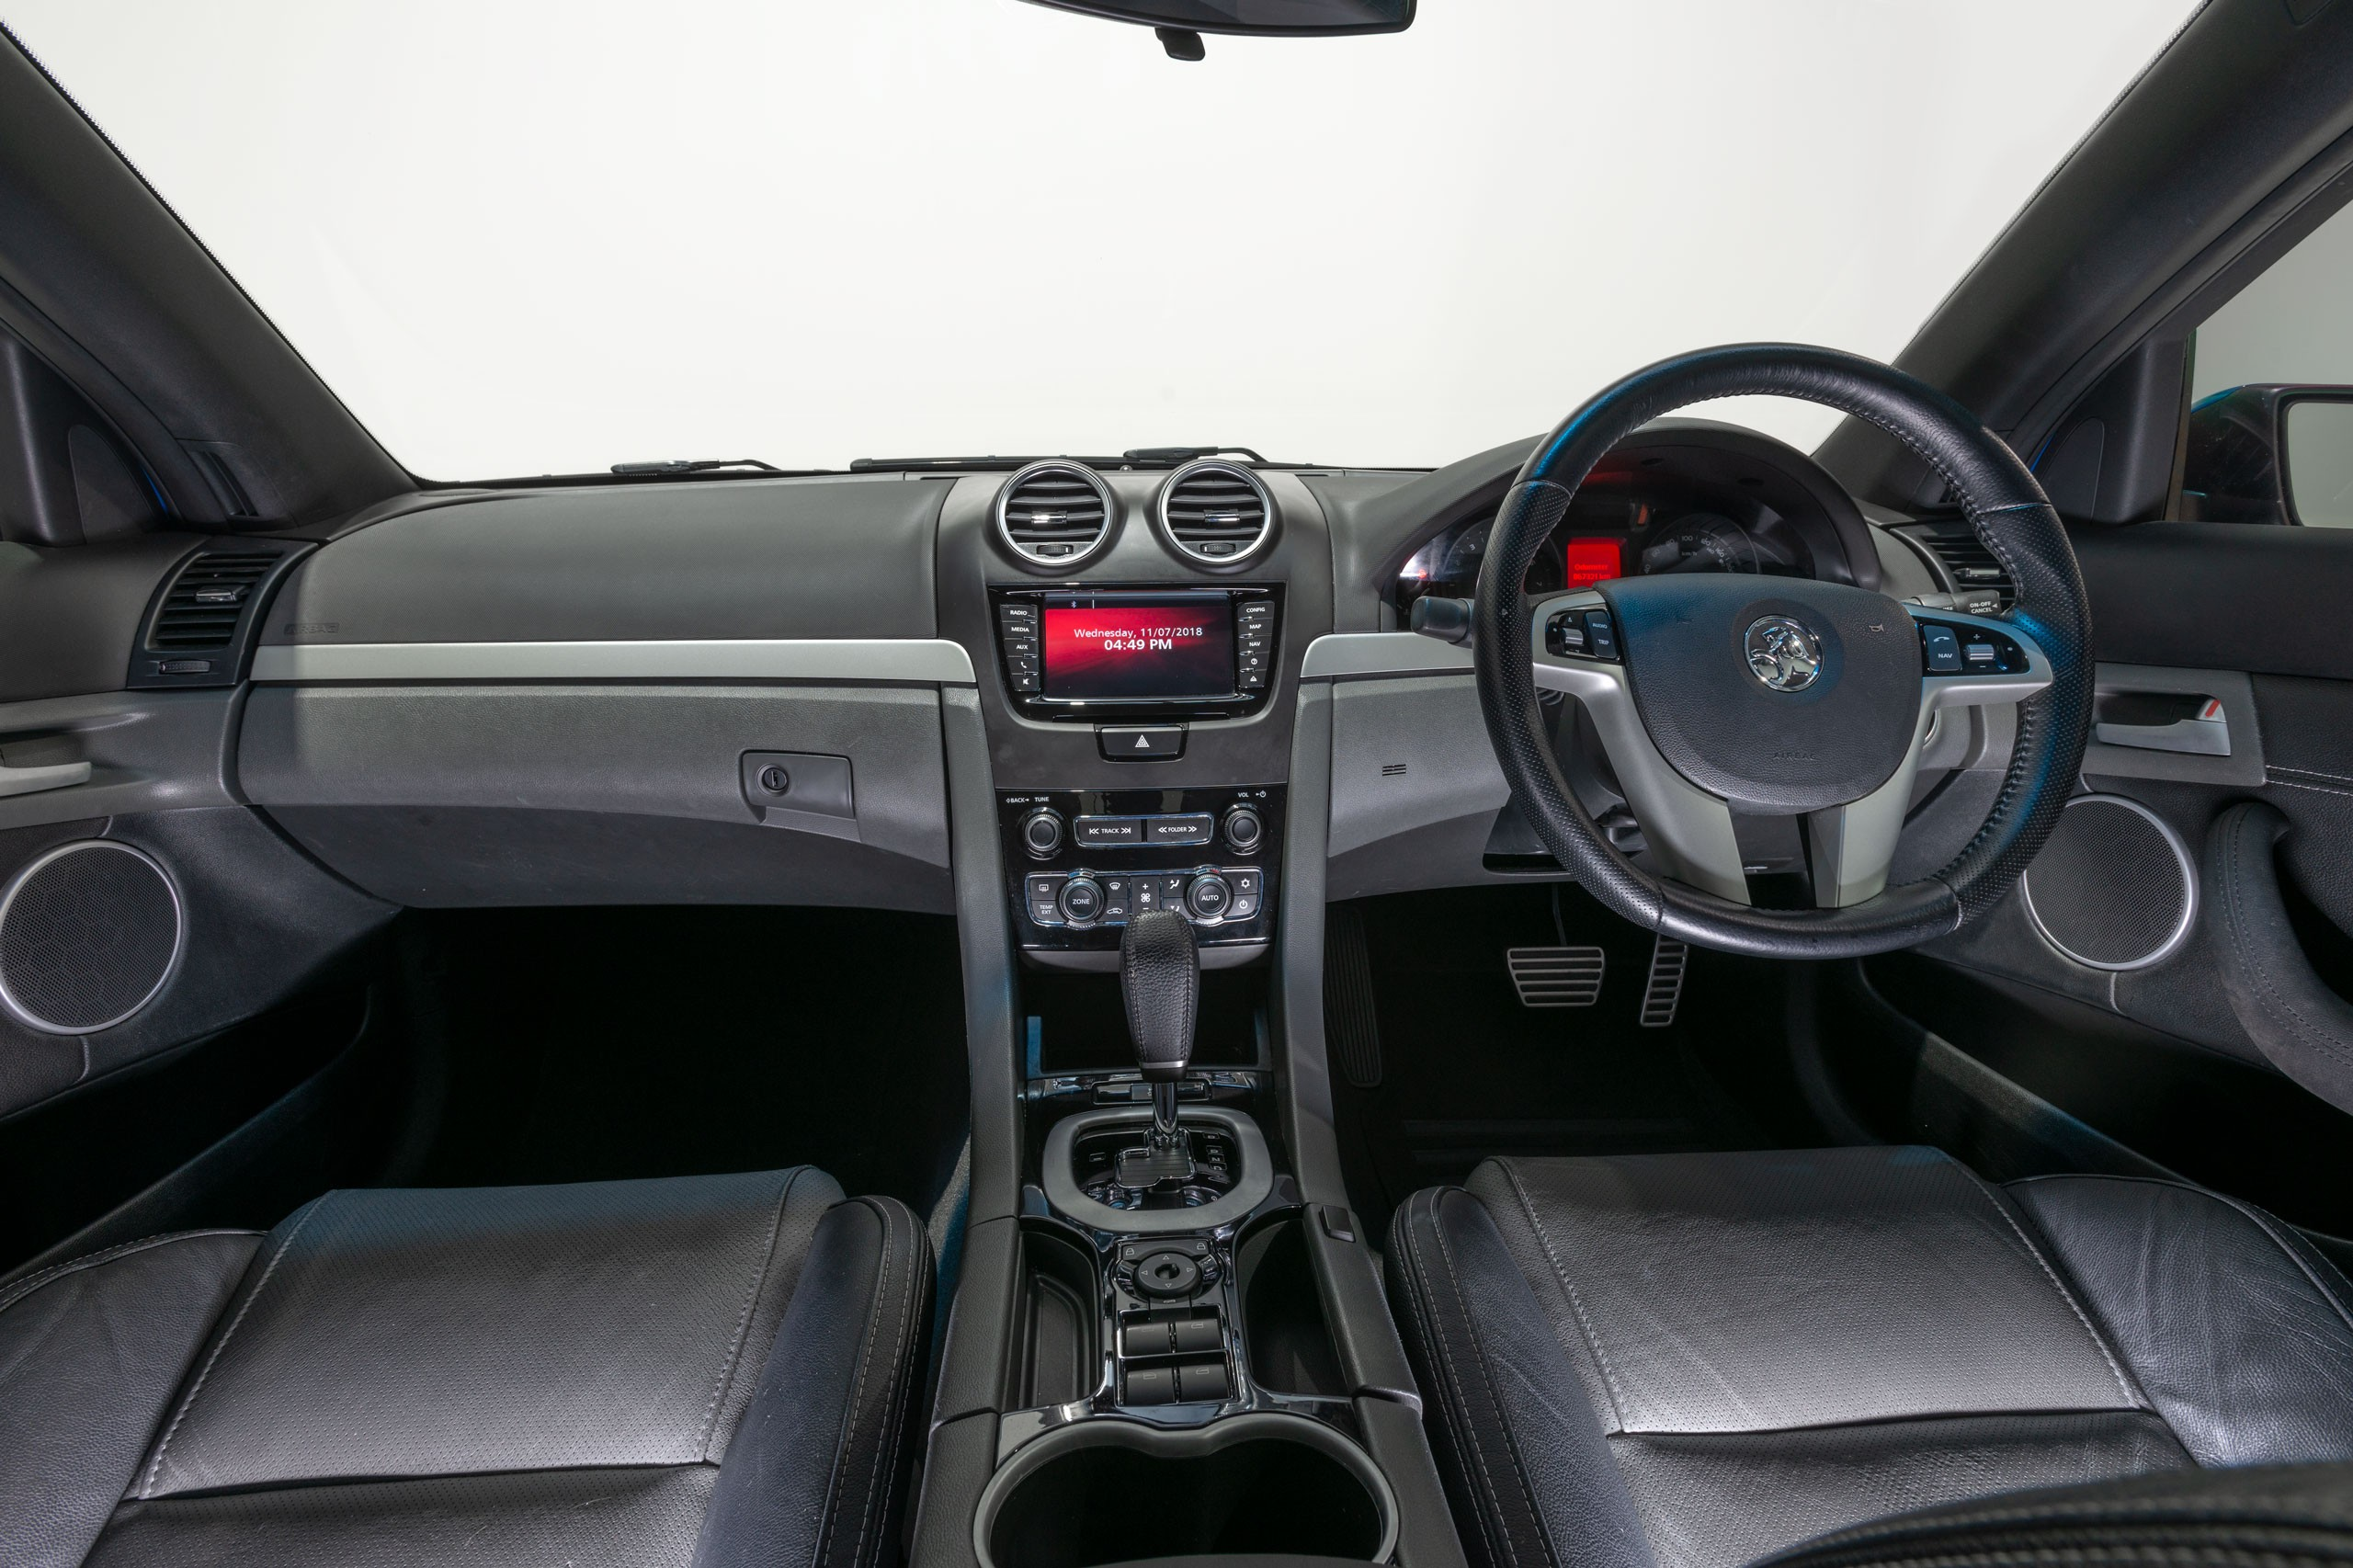 Image 5/10 of 2012 Holden Commodore SS V Z Series